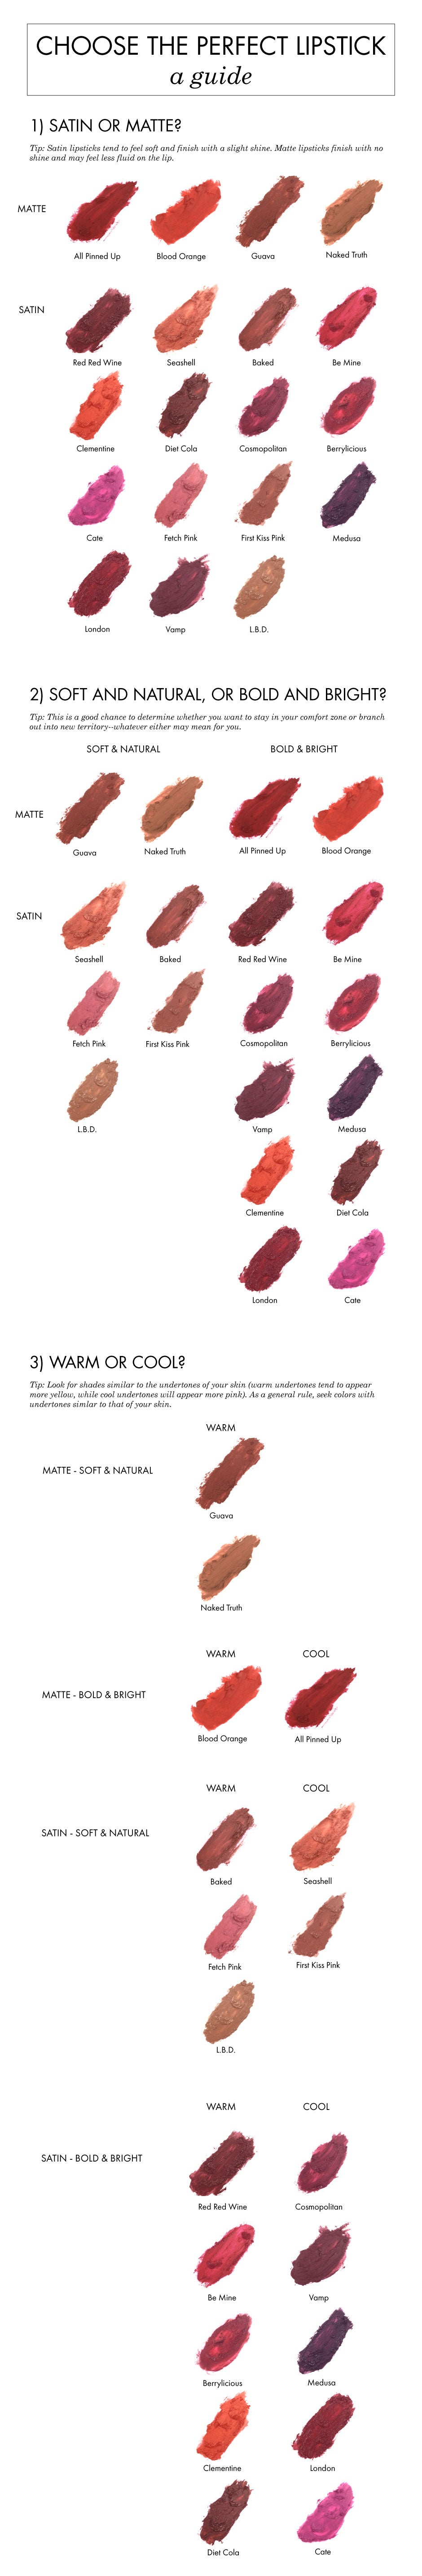 Cate McNabb Lipstick Guide